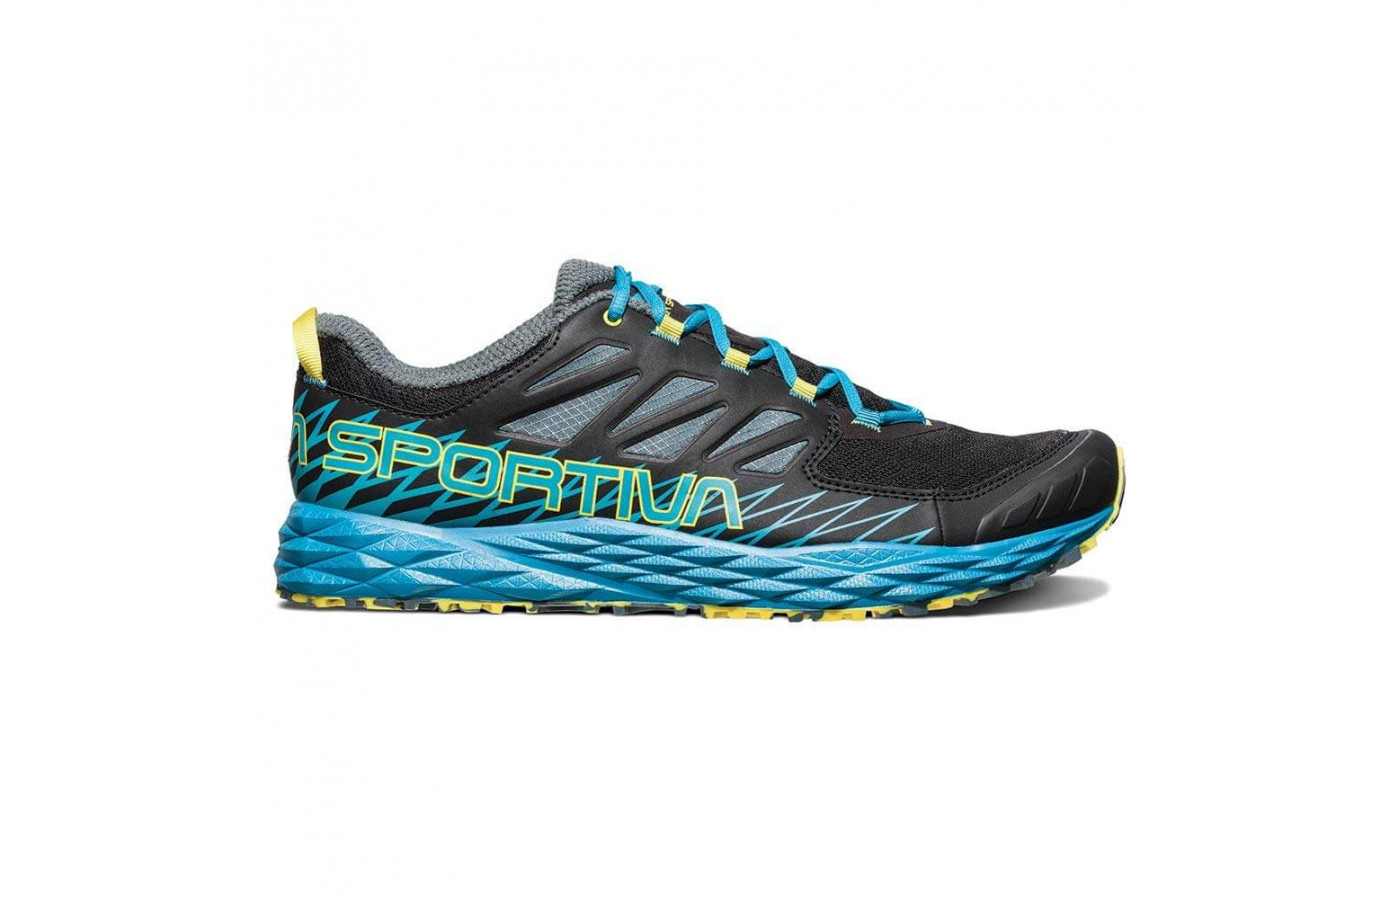 La Sportiva uses injection-molded EVA foam for the Lycan's midsole.